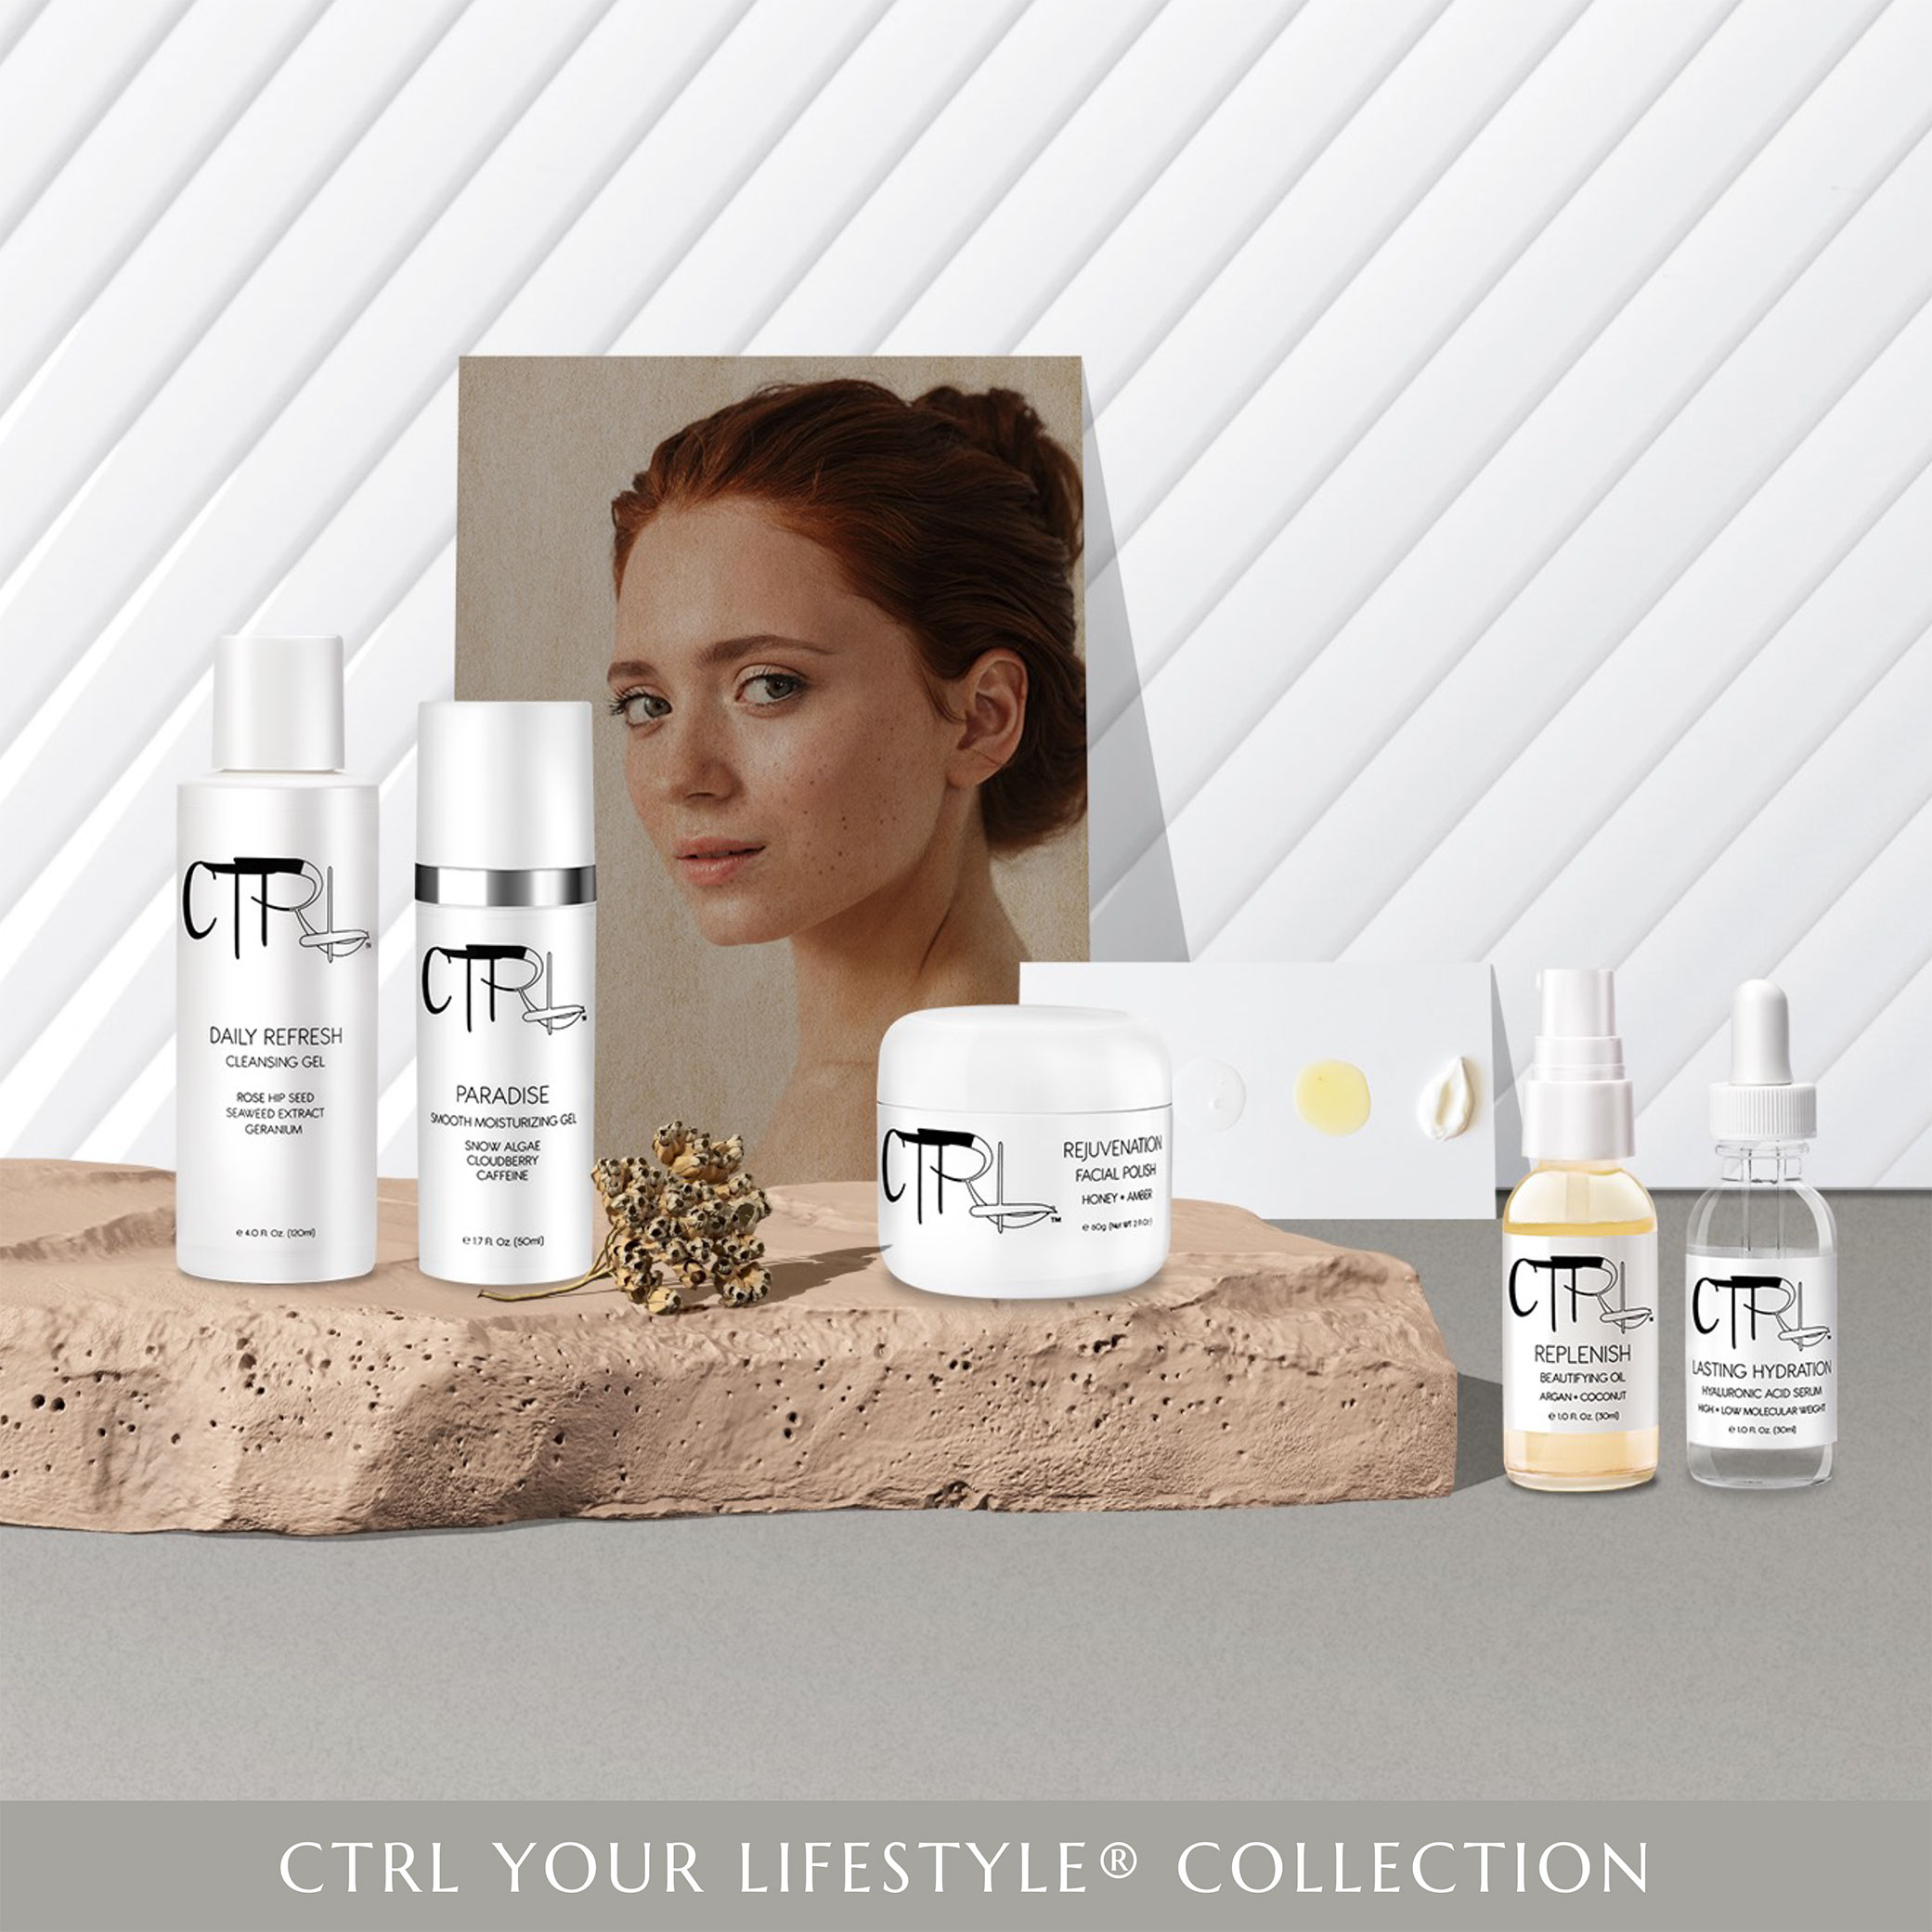 CTRL Cosmetics website design image showcasing Your Lifestyle Collection skincare products and elements for decoration.